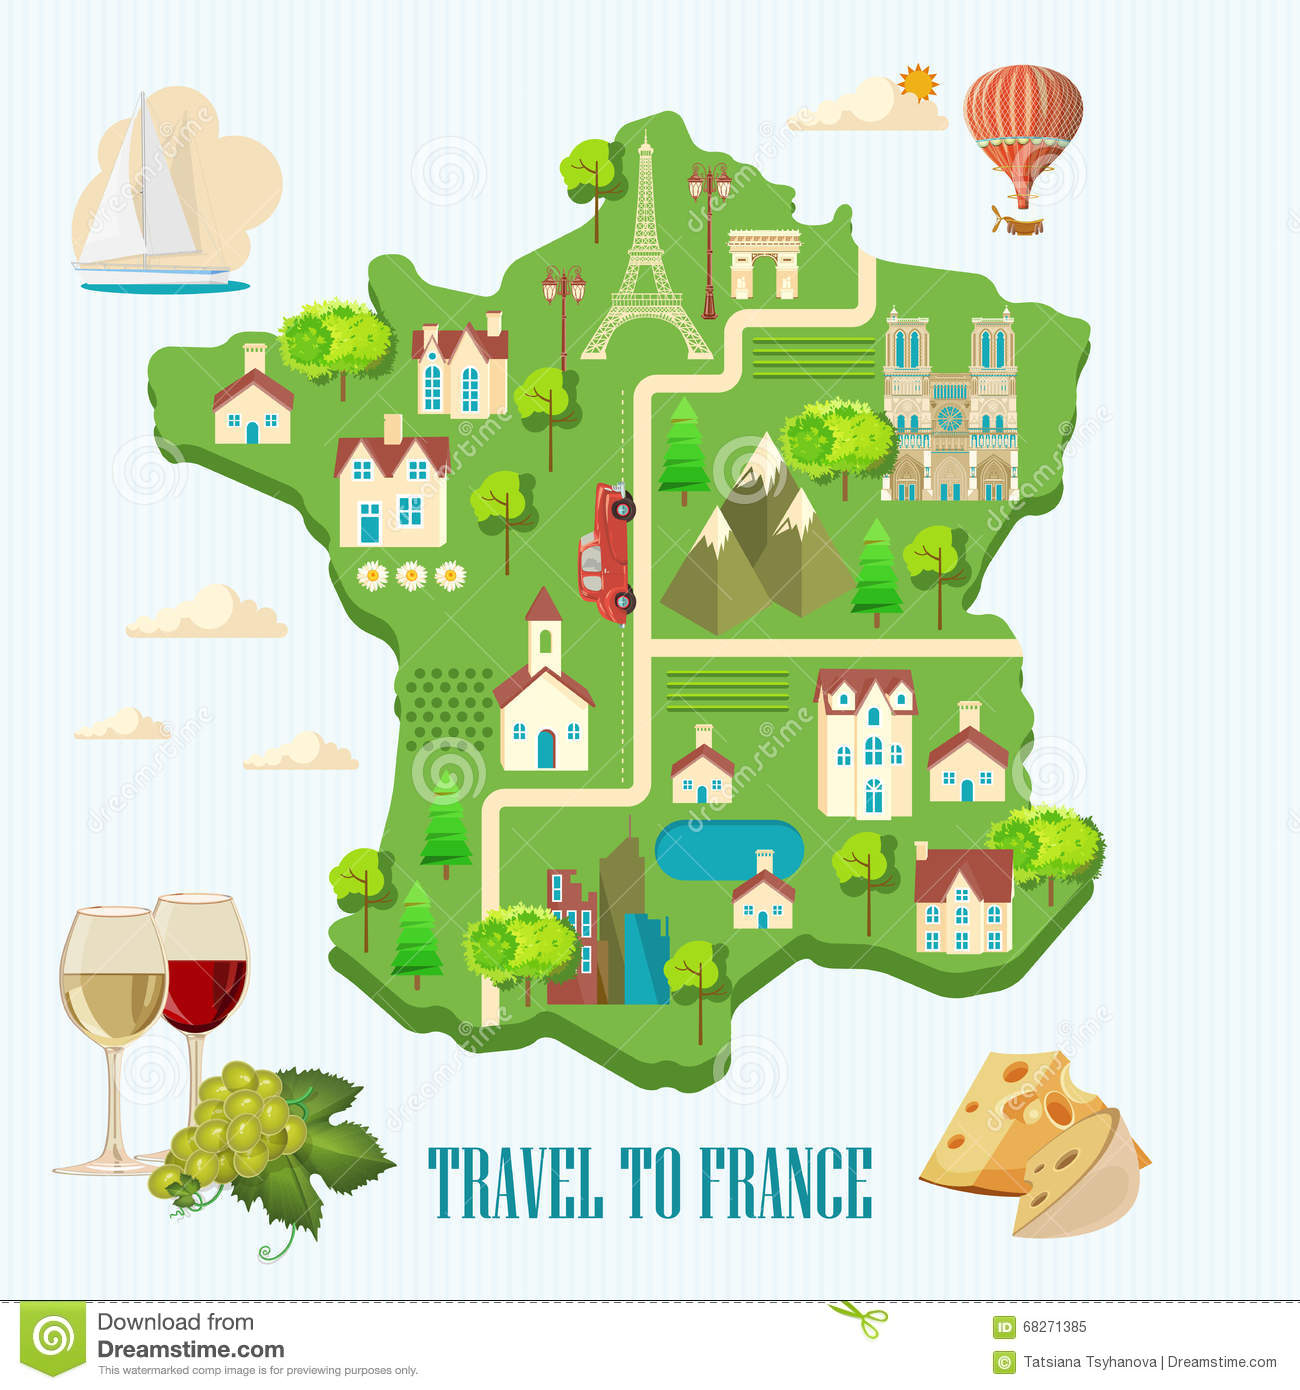 Map Of France For Tourists.Travel To France Sightseeing Of Paris And France Romantic Tourist